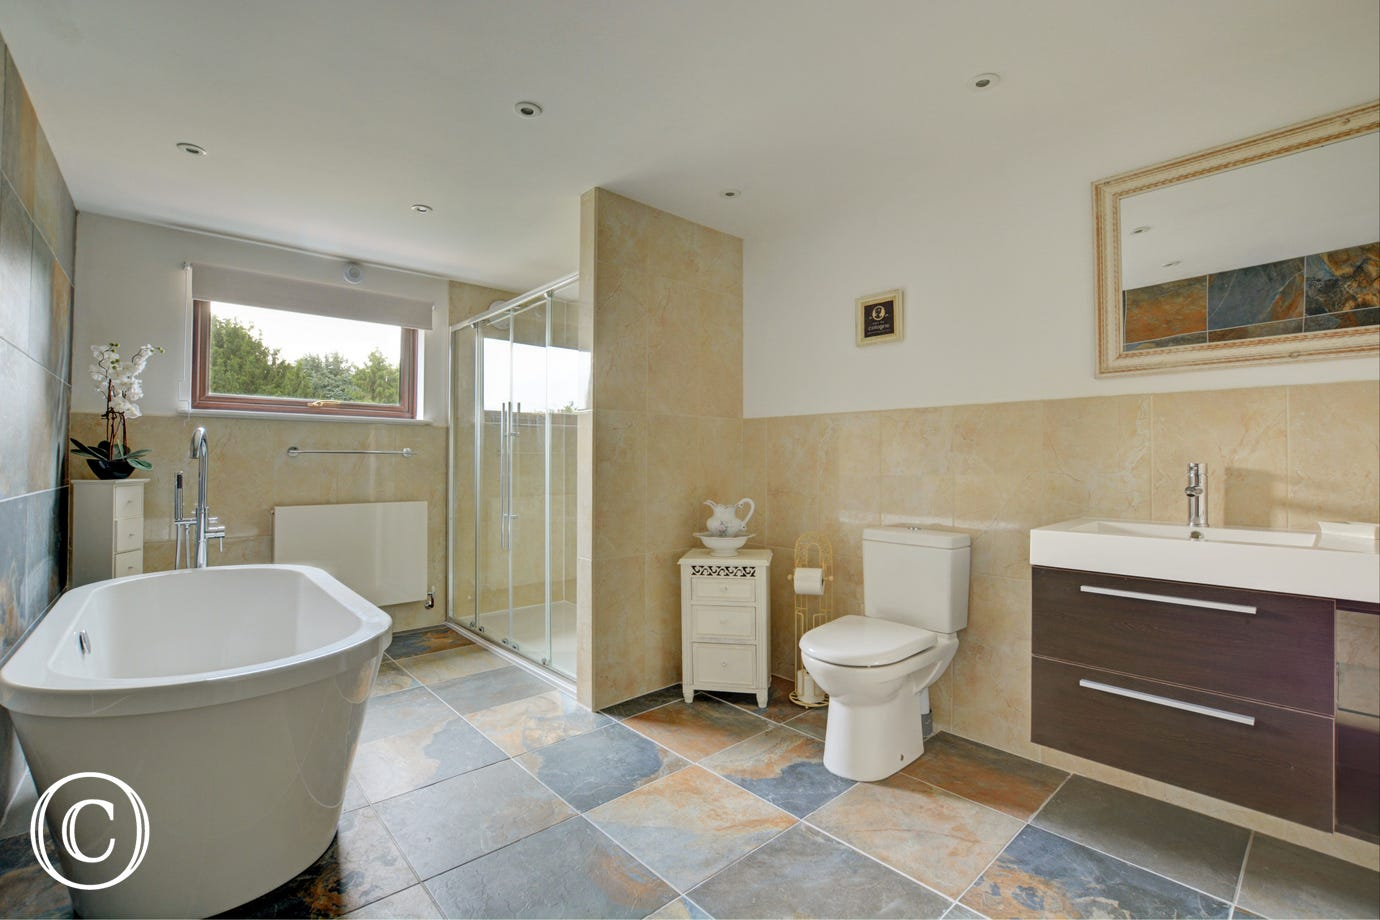 Bathroom with bath shower cubicle, washbasin and wc